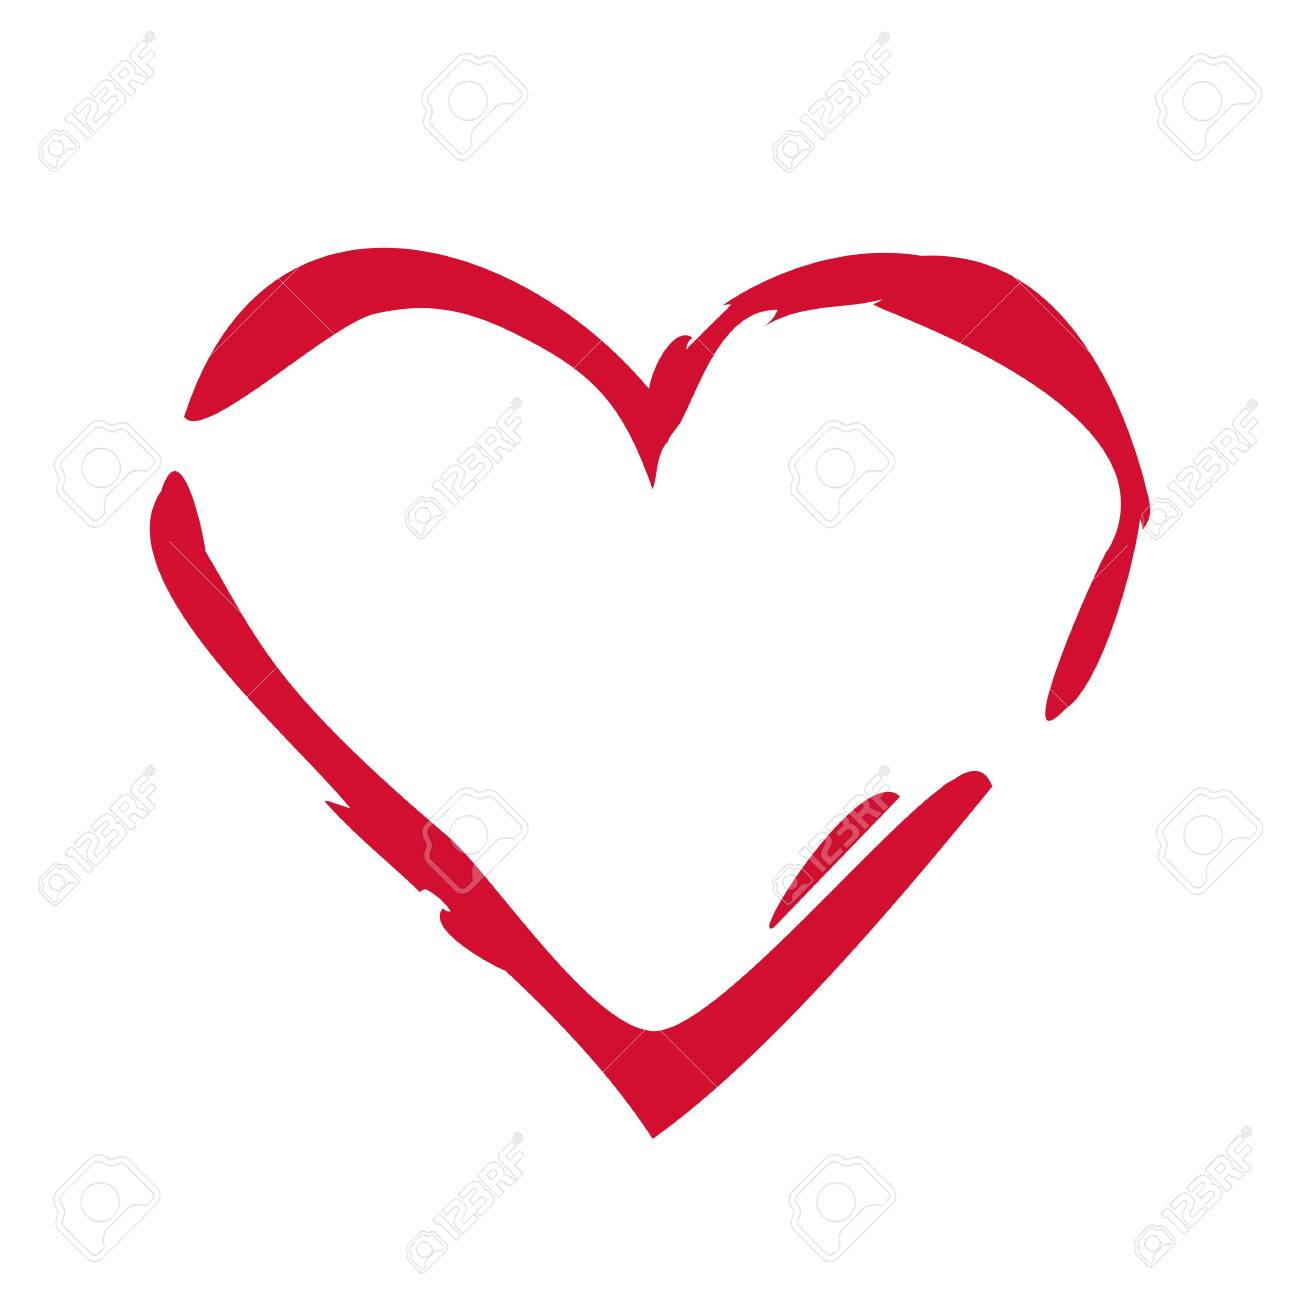 Heart isolated on white background - 131975487